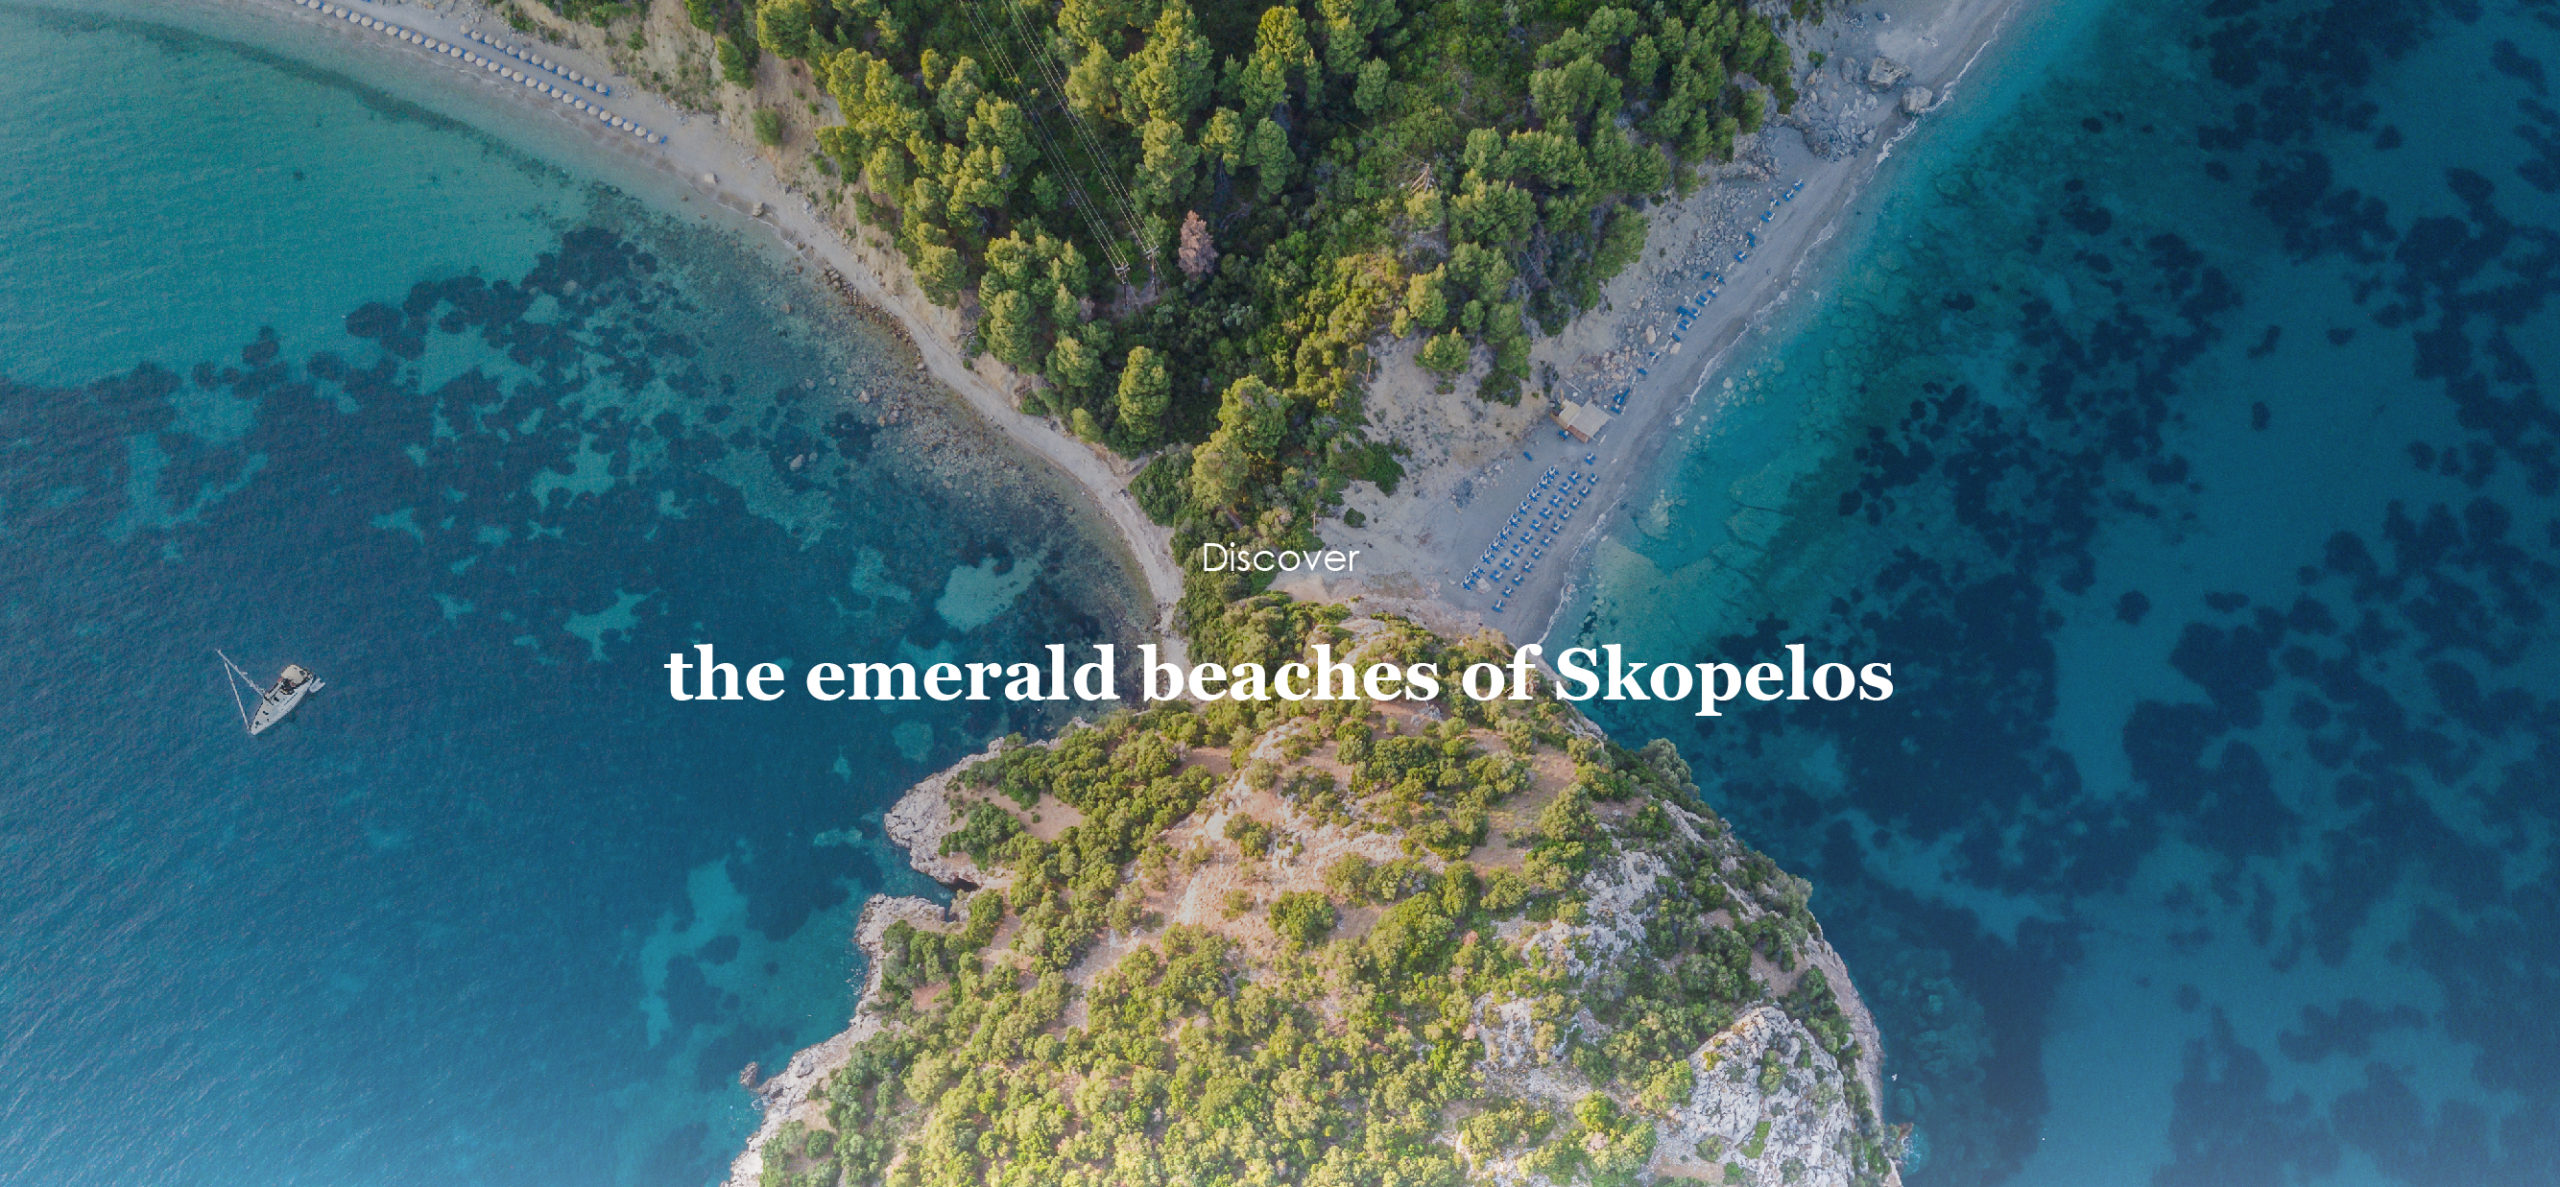 Discover the emerald beaches of Skopelos island